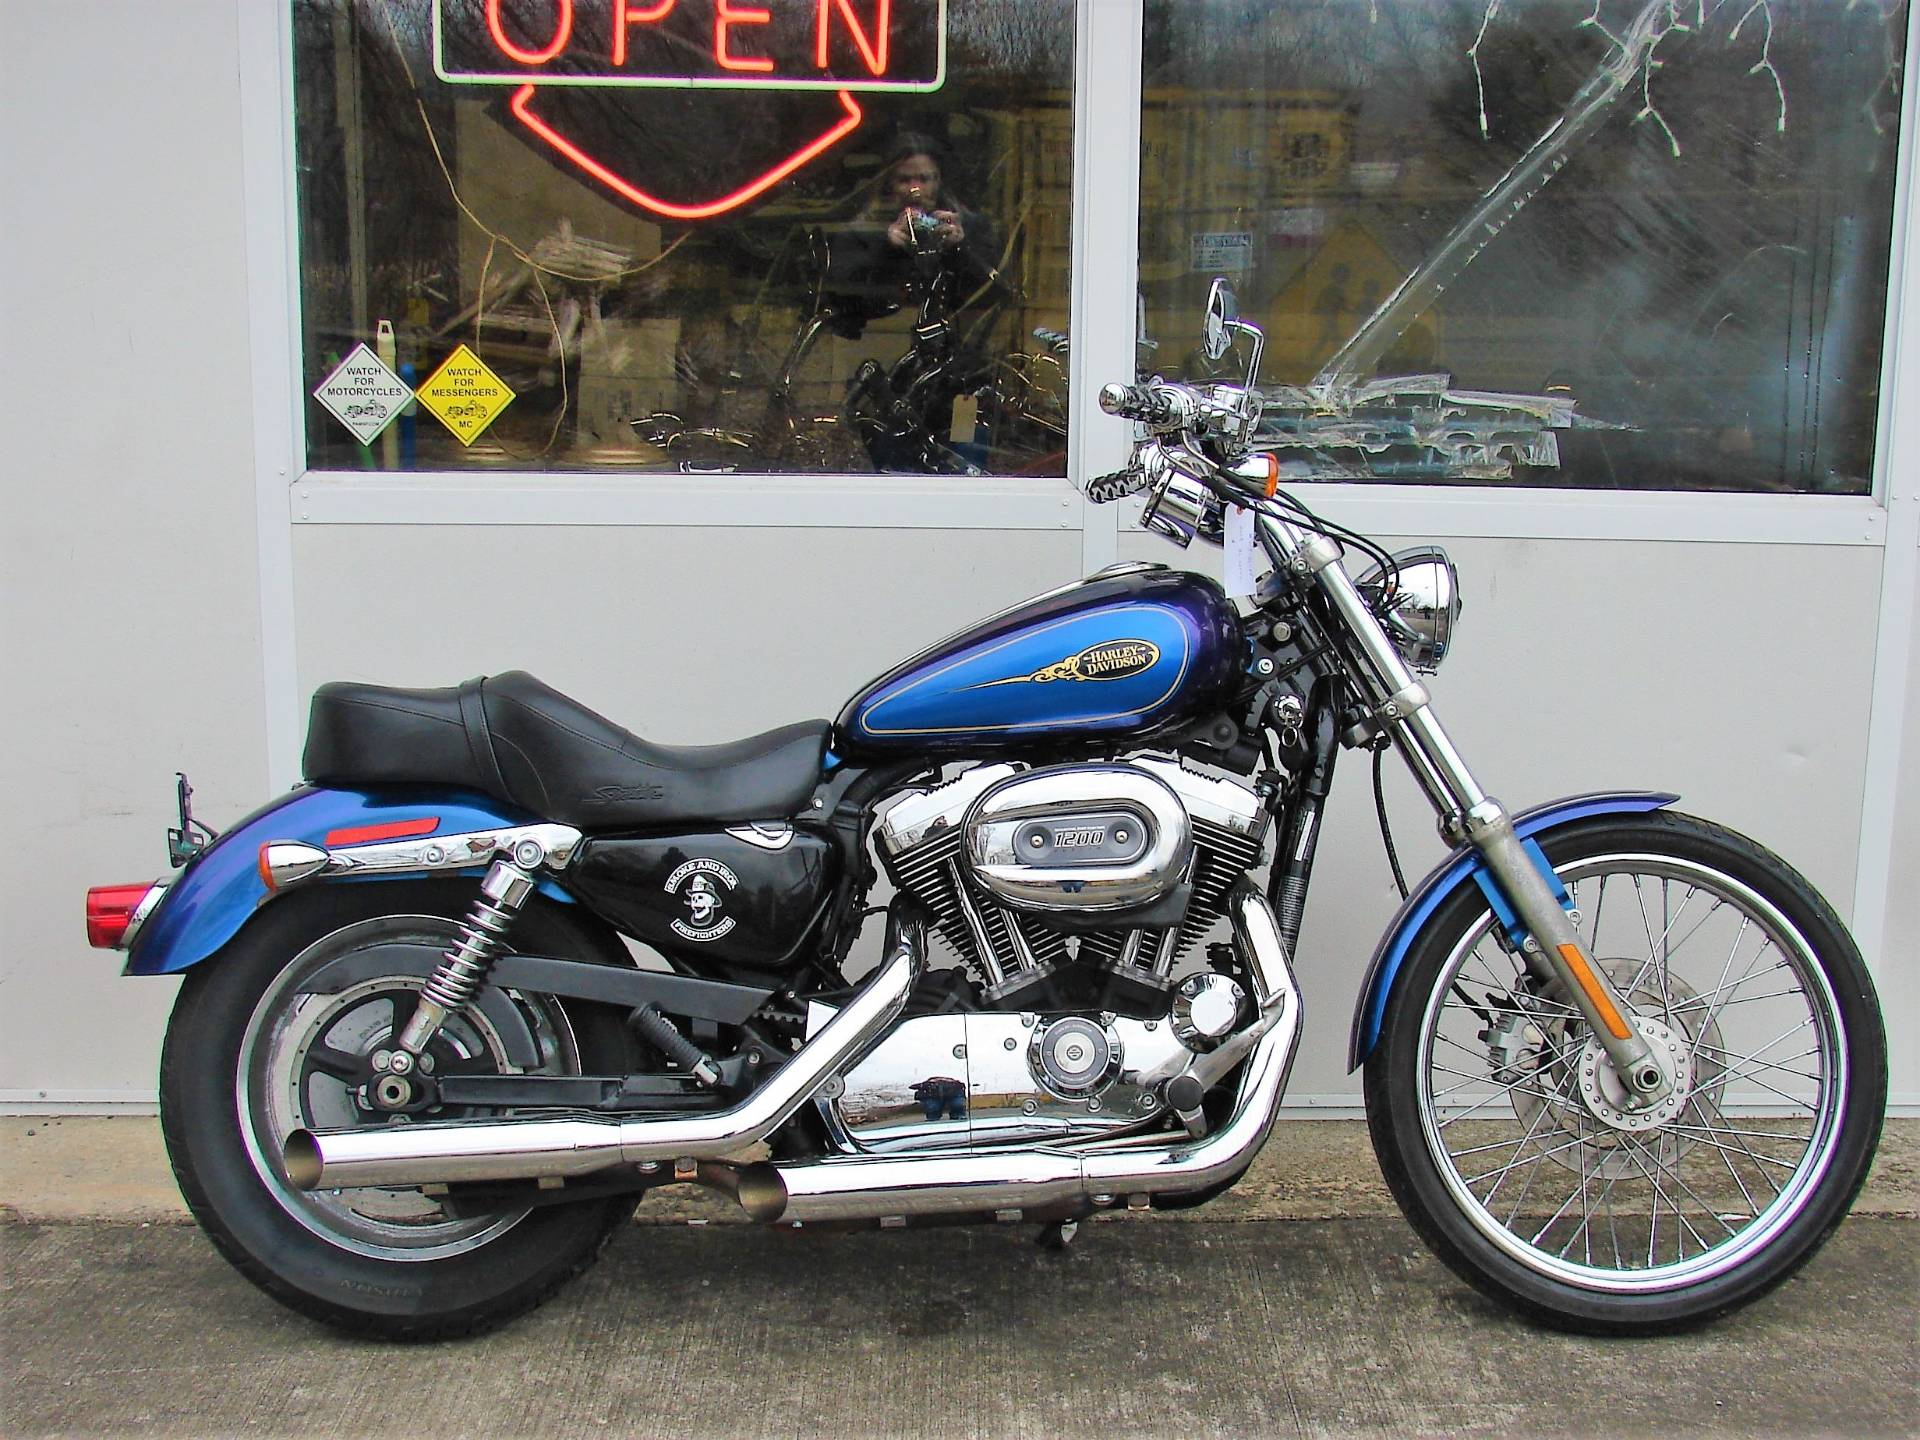 2009 Harley-Davidson XL 1200C Sportster in Williamstown, New Jersey - Photo 2